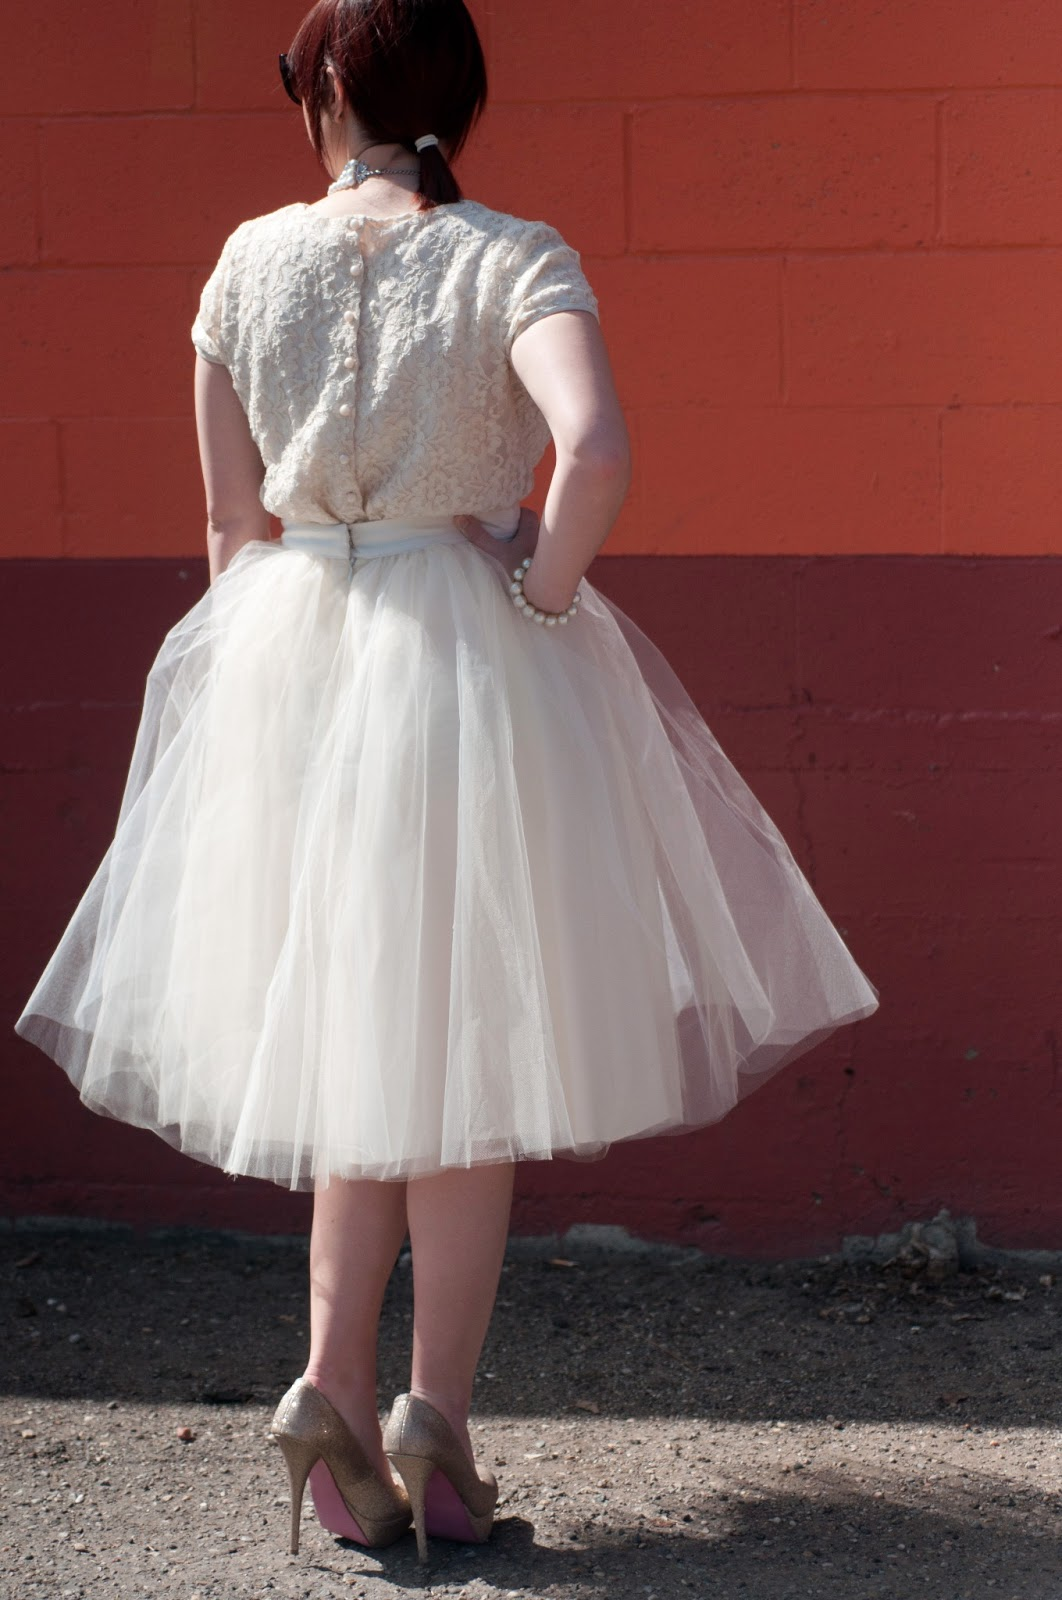 wedding dinner, wedding wear, wedding attire, nordstrom, h and m, h and m shirt, lace, shirt with buttons on the back, alexander grecco tulle, alexander grecco, tulle, tutu, womens tulle, white tulle, cream tulle, cream tutu, white tut, steve madden, sparkle shoes, heels, stilettos, steven madden stilettos, prada, prada sunglasses, black sunglasses, prada cat eye sunglasses, cat eye, cat eye sunglasses, pearls, thailand, pearl necklace, pearl braclett, mens style, womens style, mens fashion, womens fashion, fashion blogger, utah blogger, utah fashion, mormon fashion, mormon fashion blogger, style, fashion, button down shirt, buttons on back of shirt, color block, 2 tone, two tone, classy, audrey Hepburn inspiration, pearls and diamonds, pink soles,